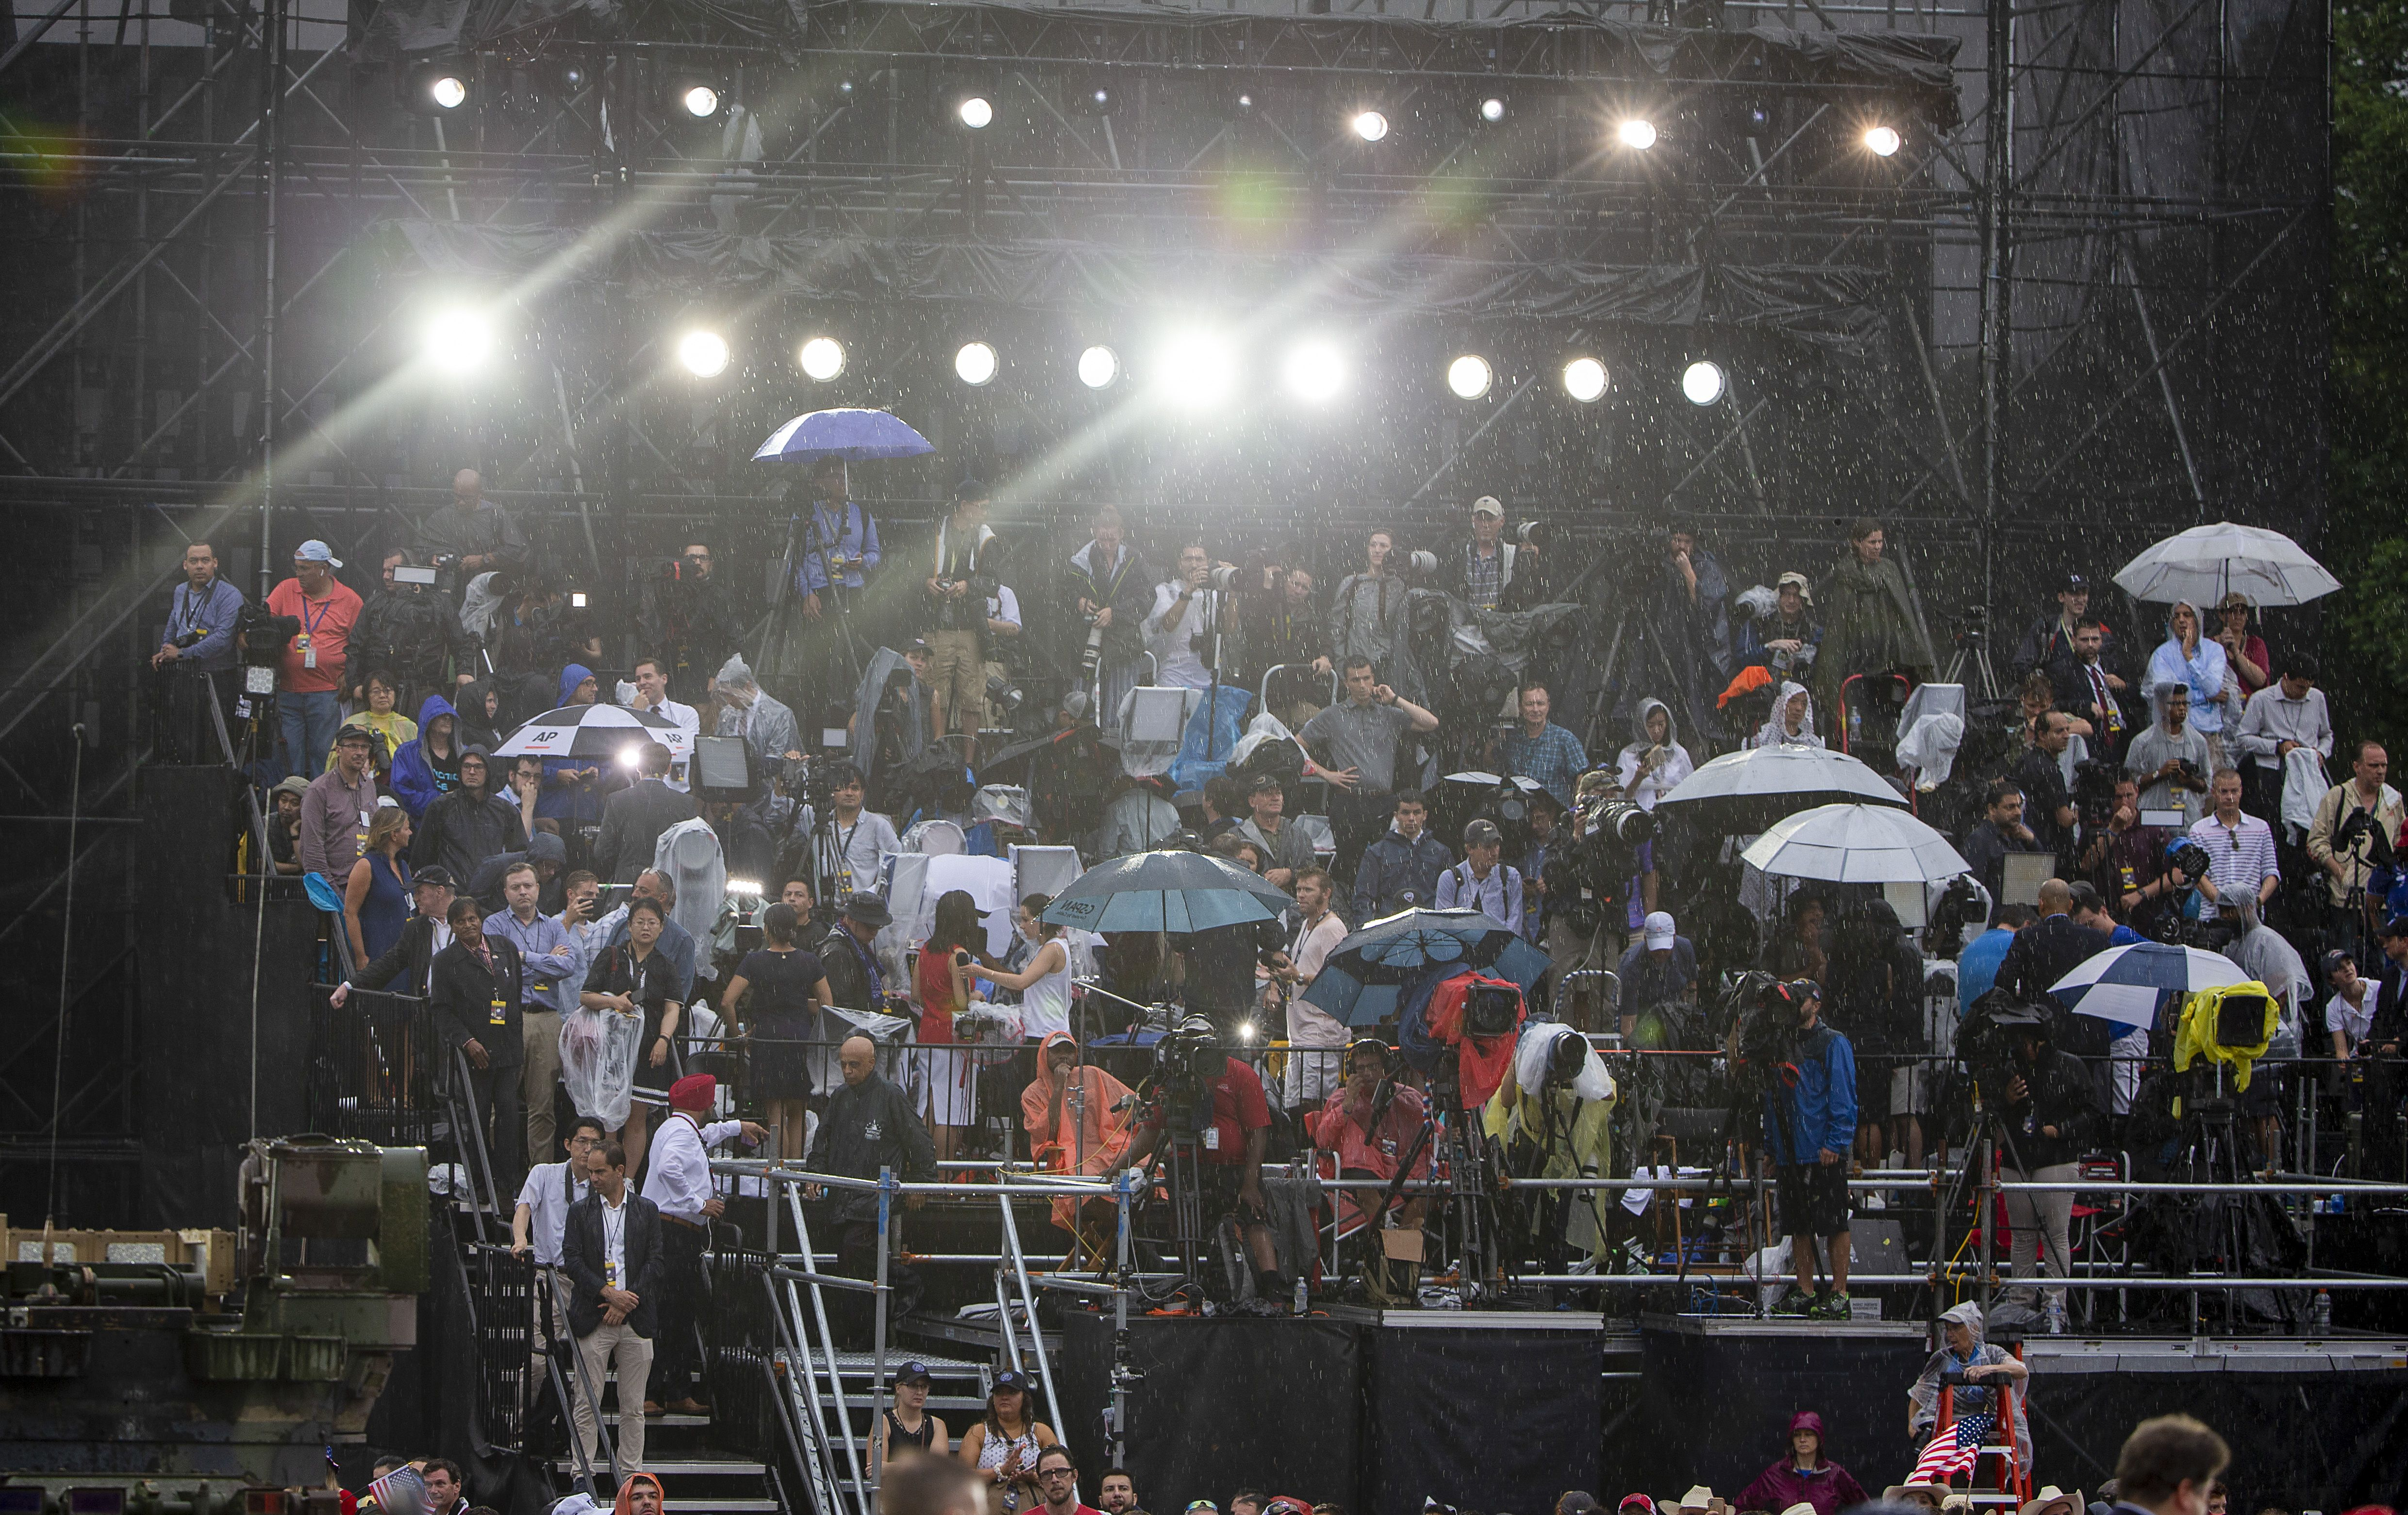 Trump Praised Nonexistent Airports During His Rain-Drenched Event